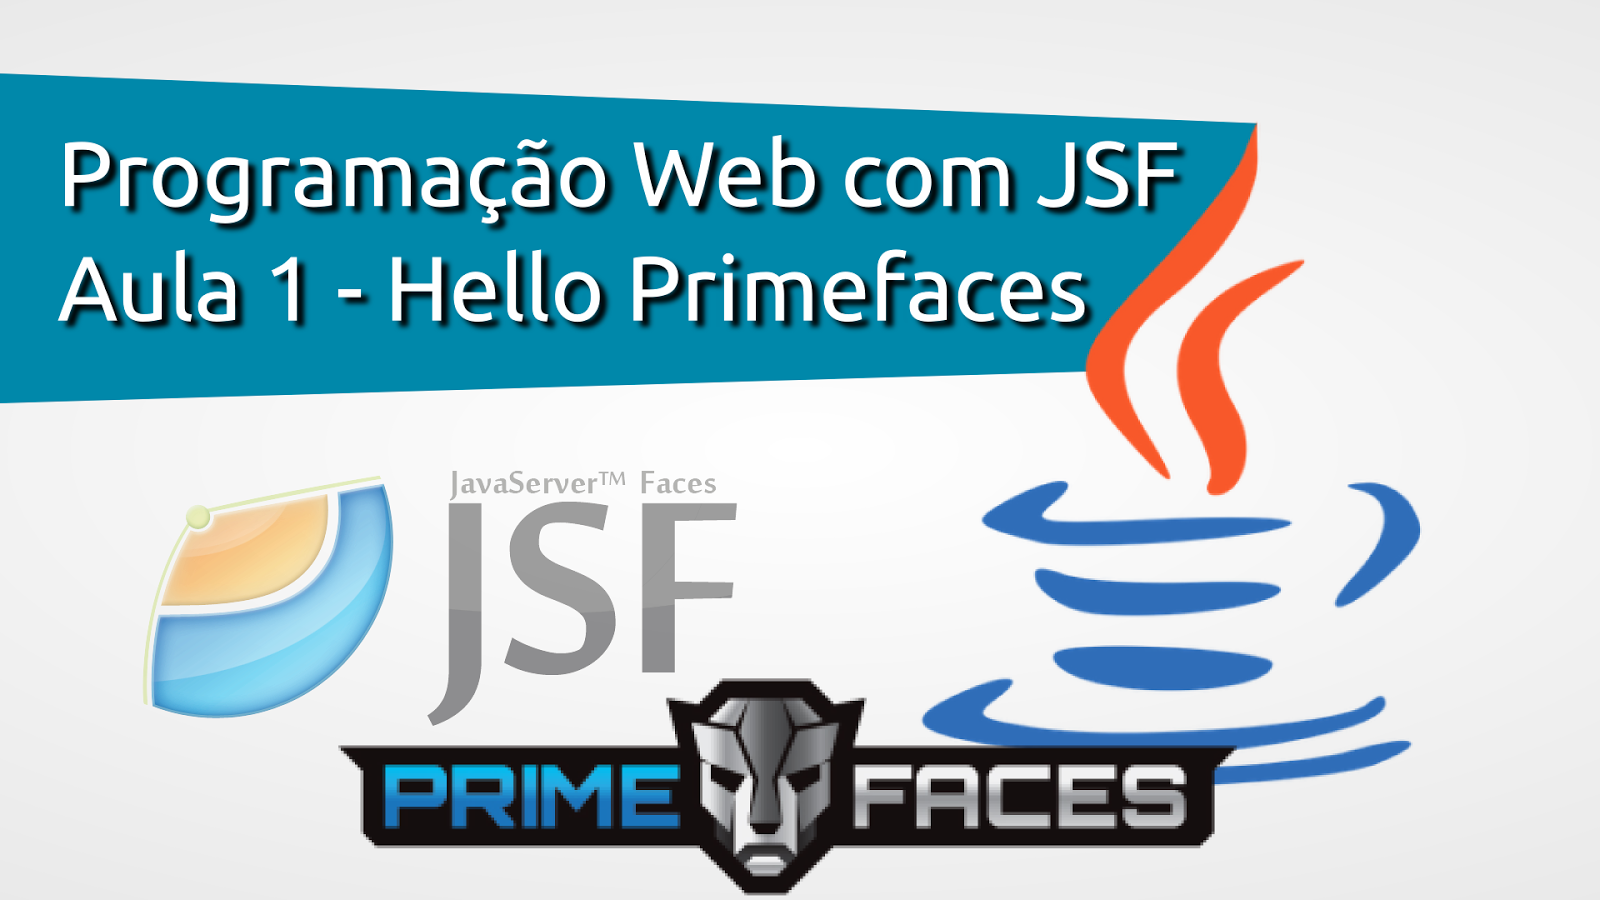 Aula 1 - Hello Primefaces